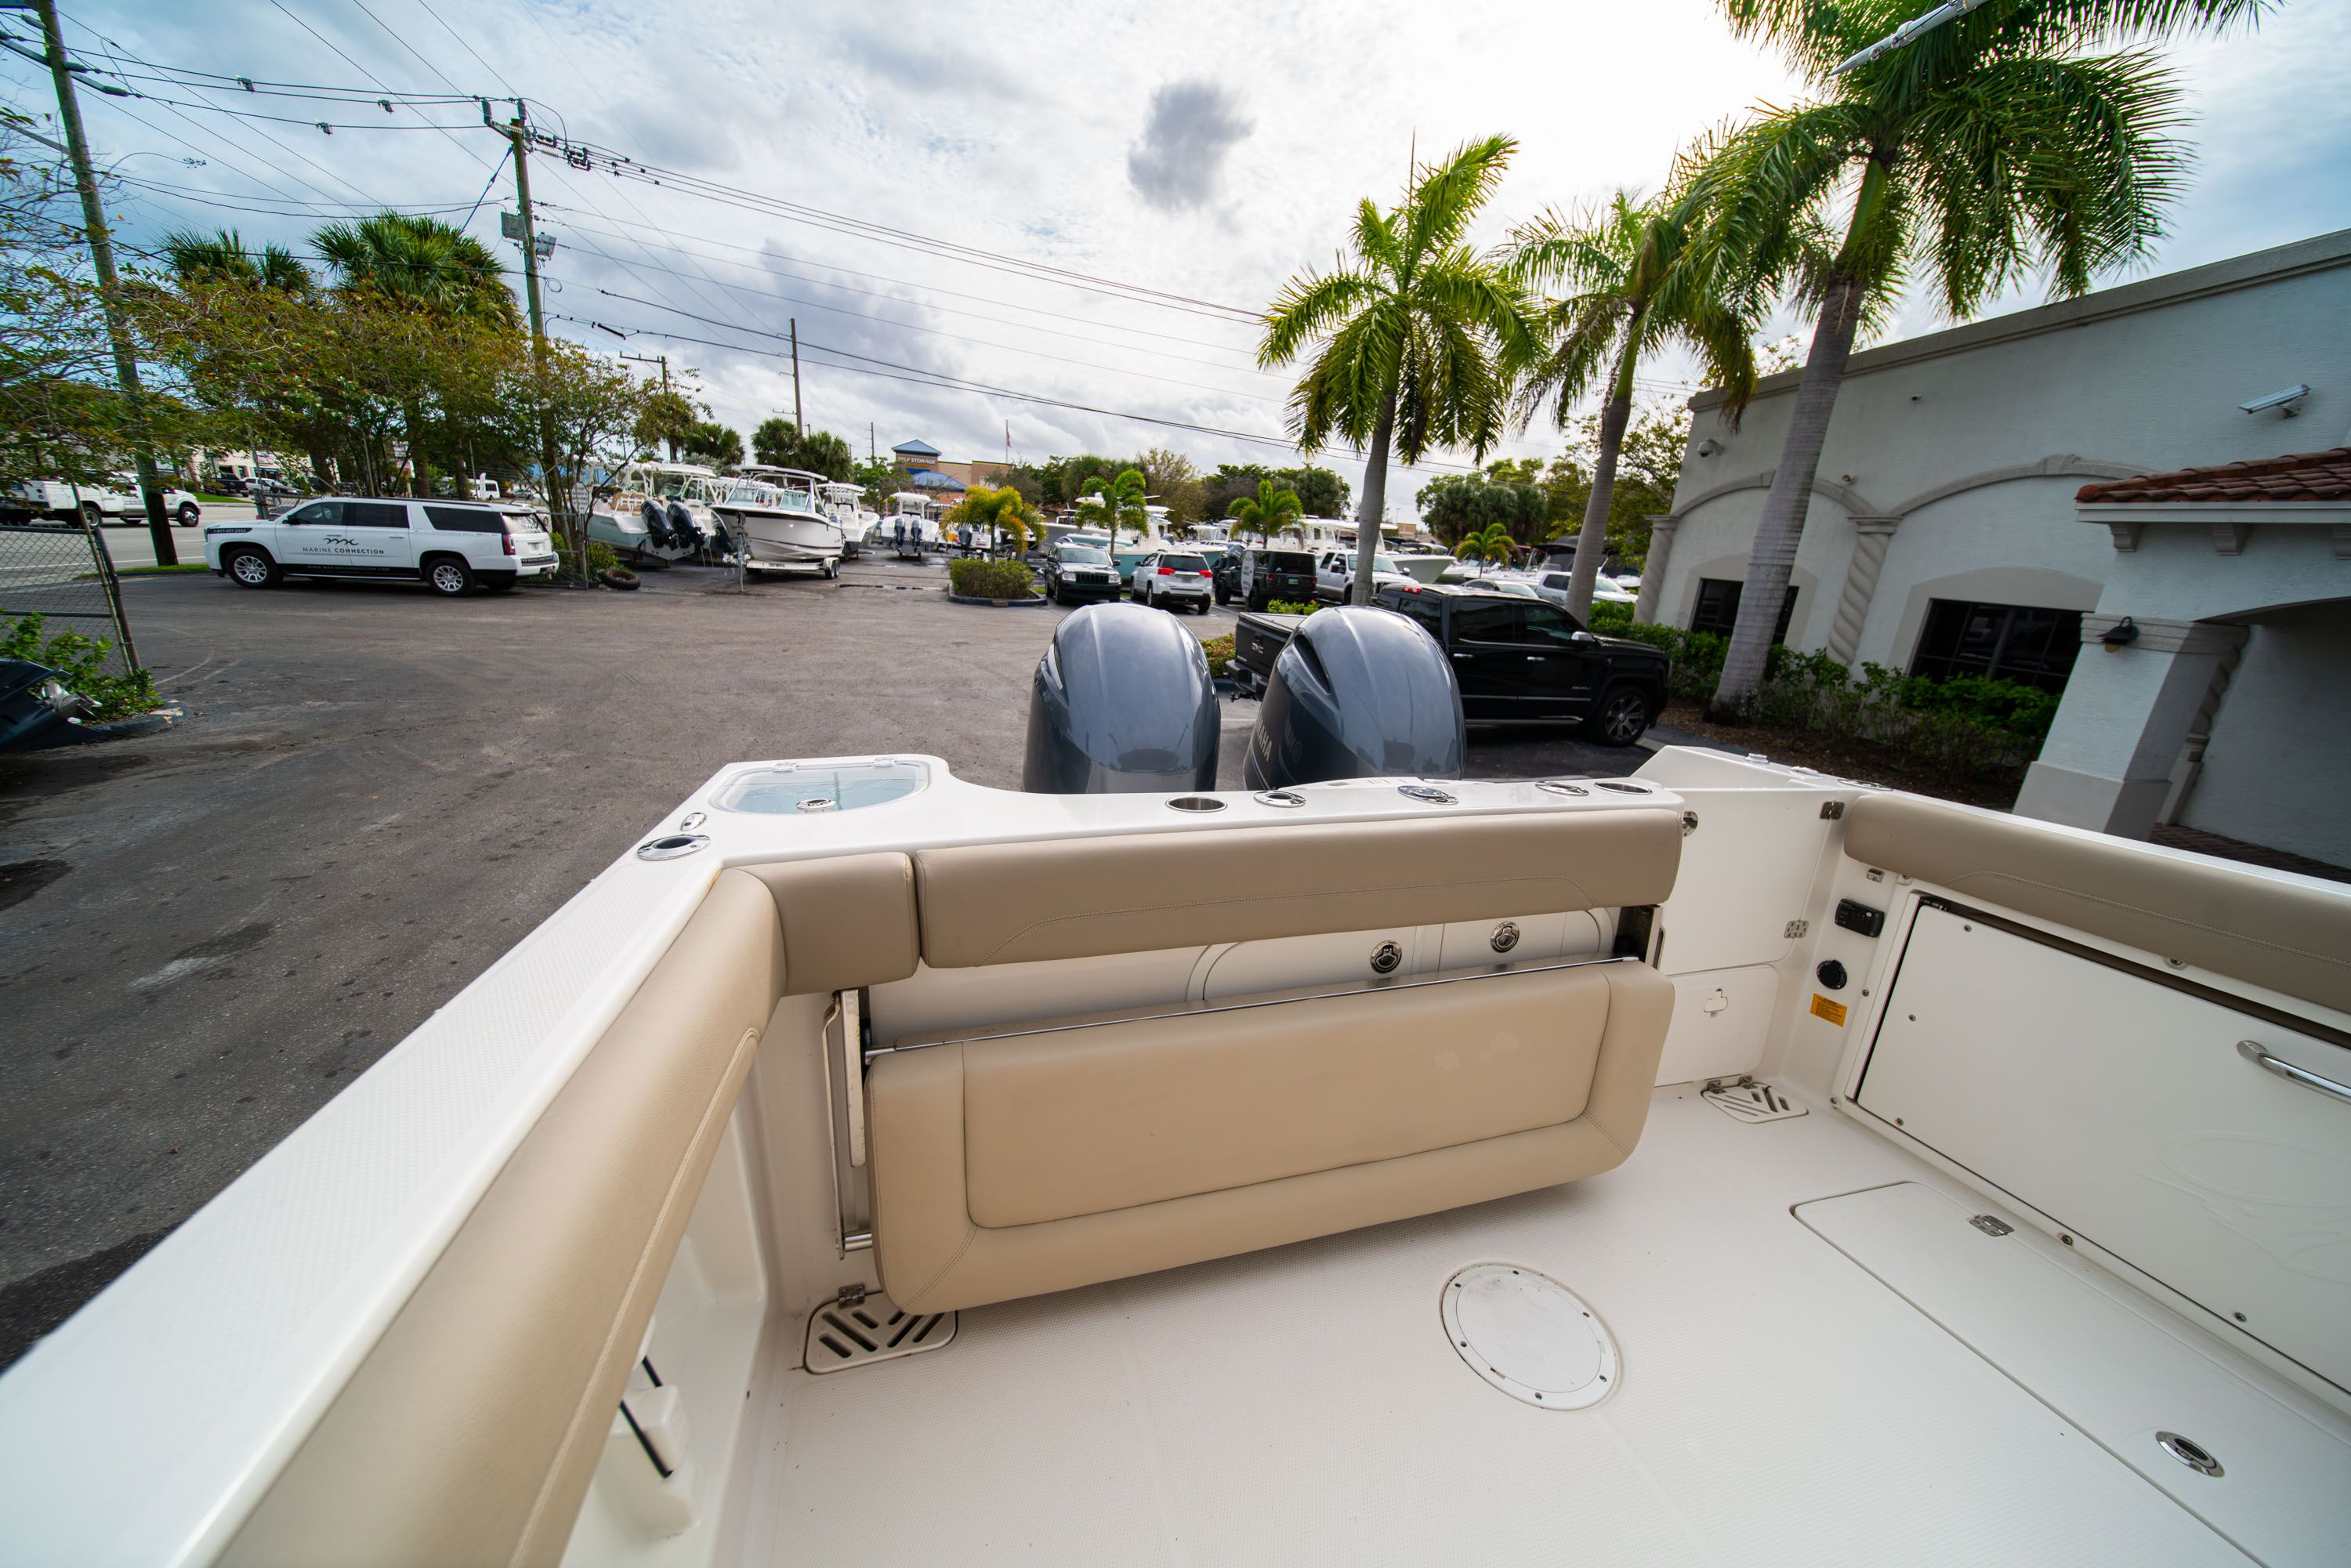 Thumbnail 13 for Used 2017 Sailfish 275 Dual Console boat for sale in West Palm Beach, FL